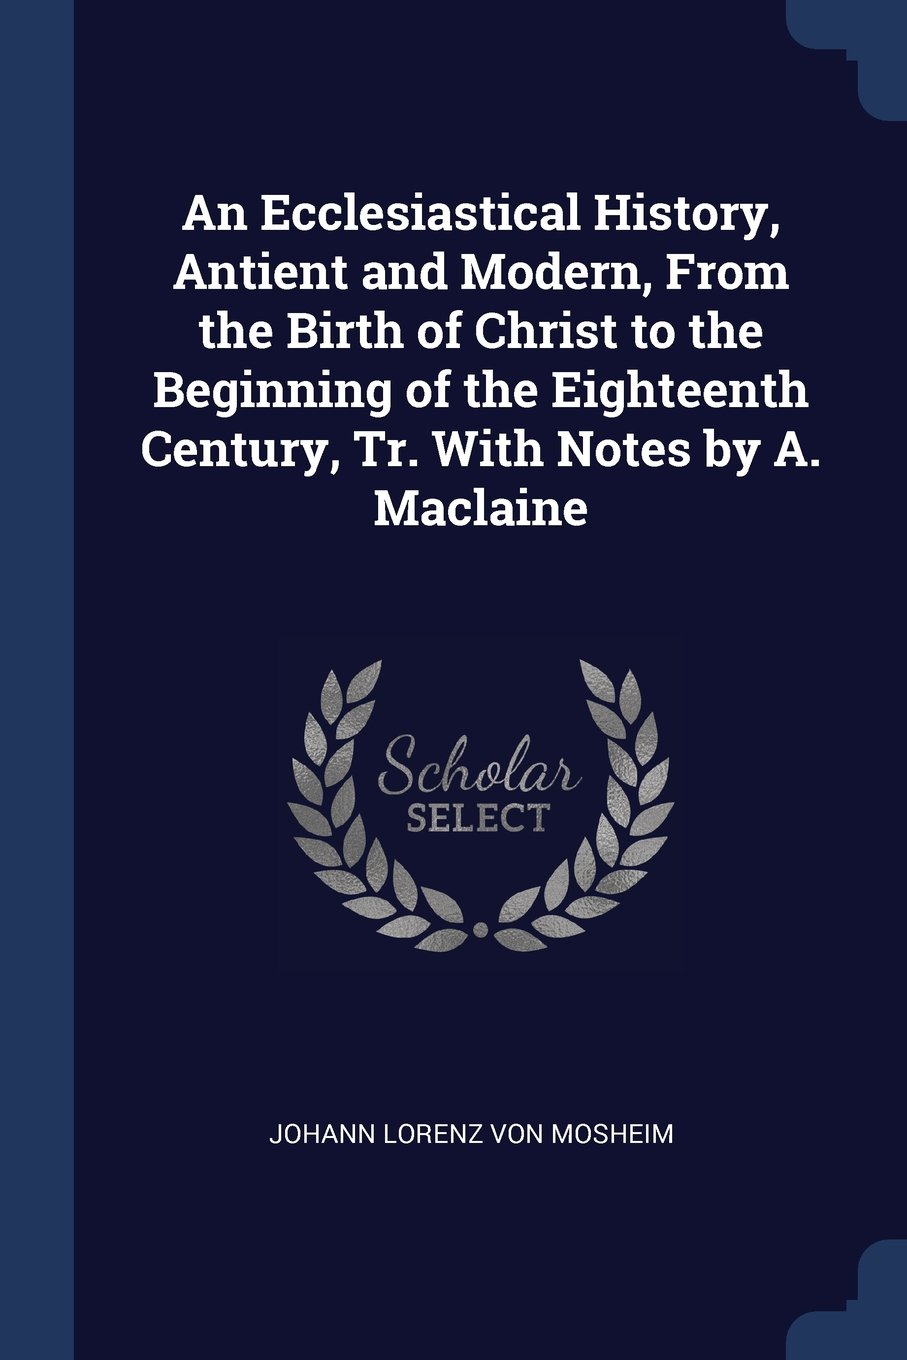 Download An Ecclesiastical History, Antient and Modern, From the Birth of Christ to the Beginning of the Eighteenth Century, Tr. With Notes by A. Maclaine pdf epub